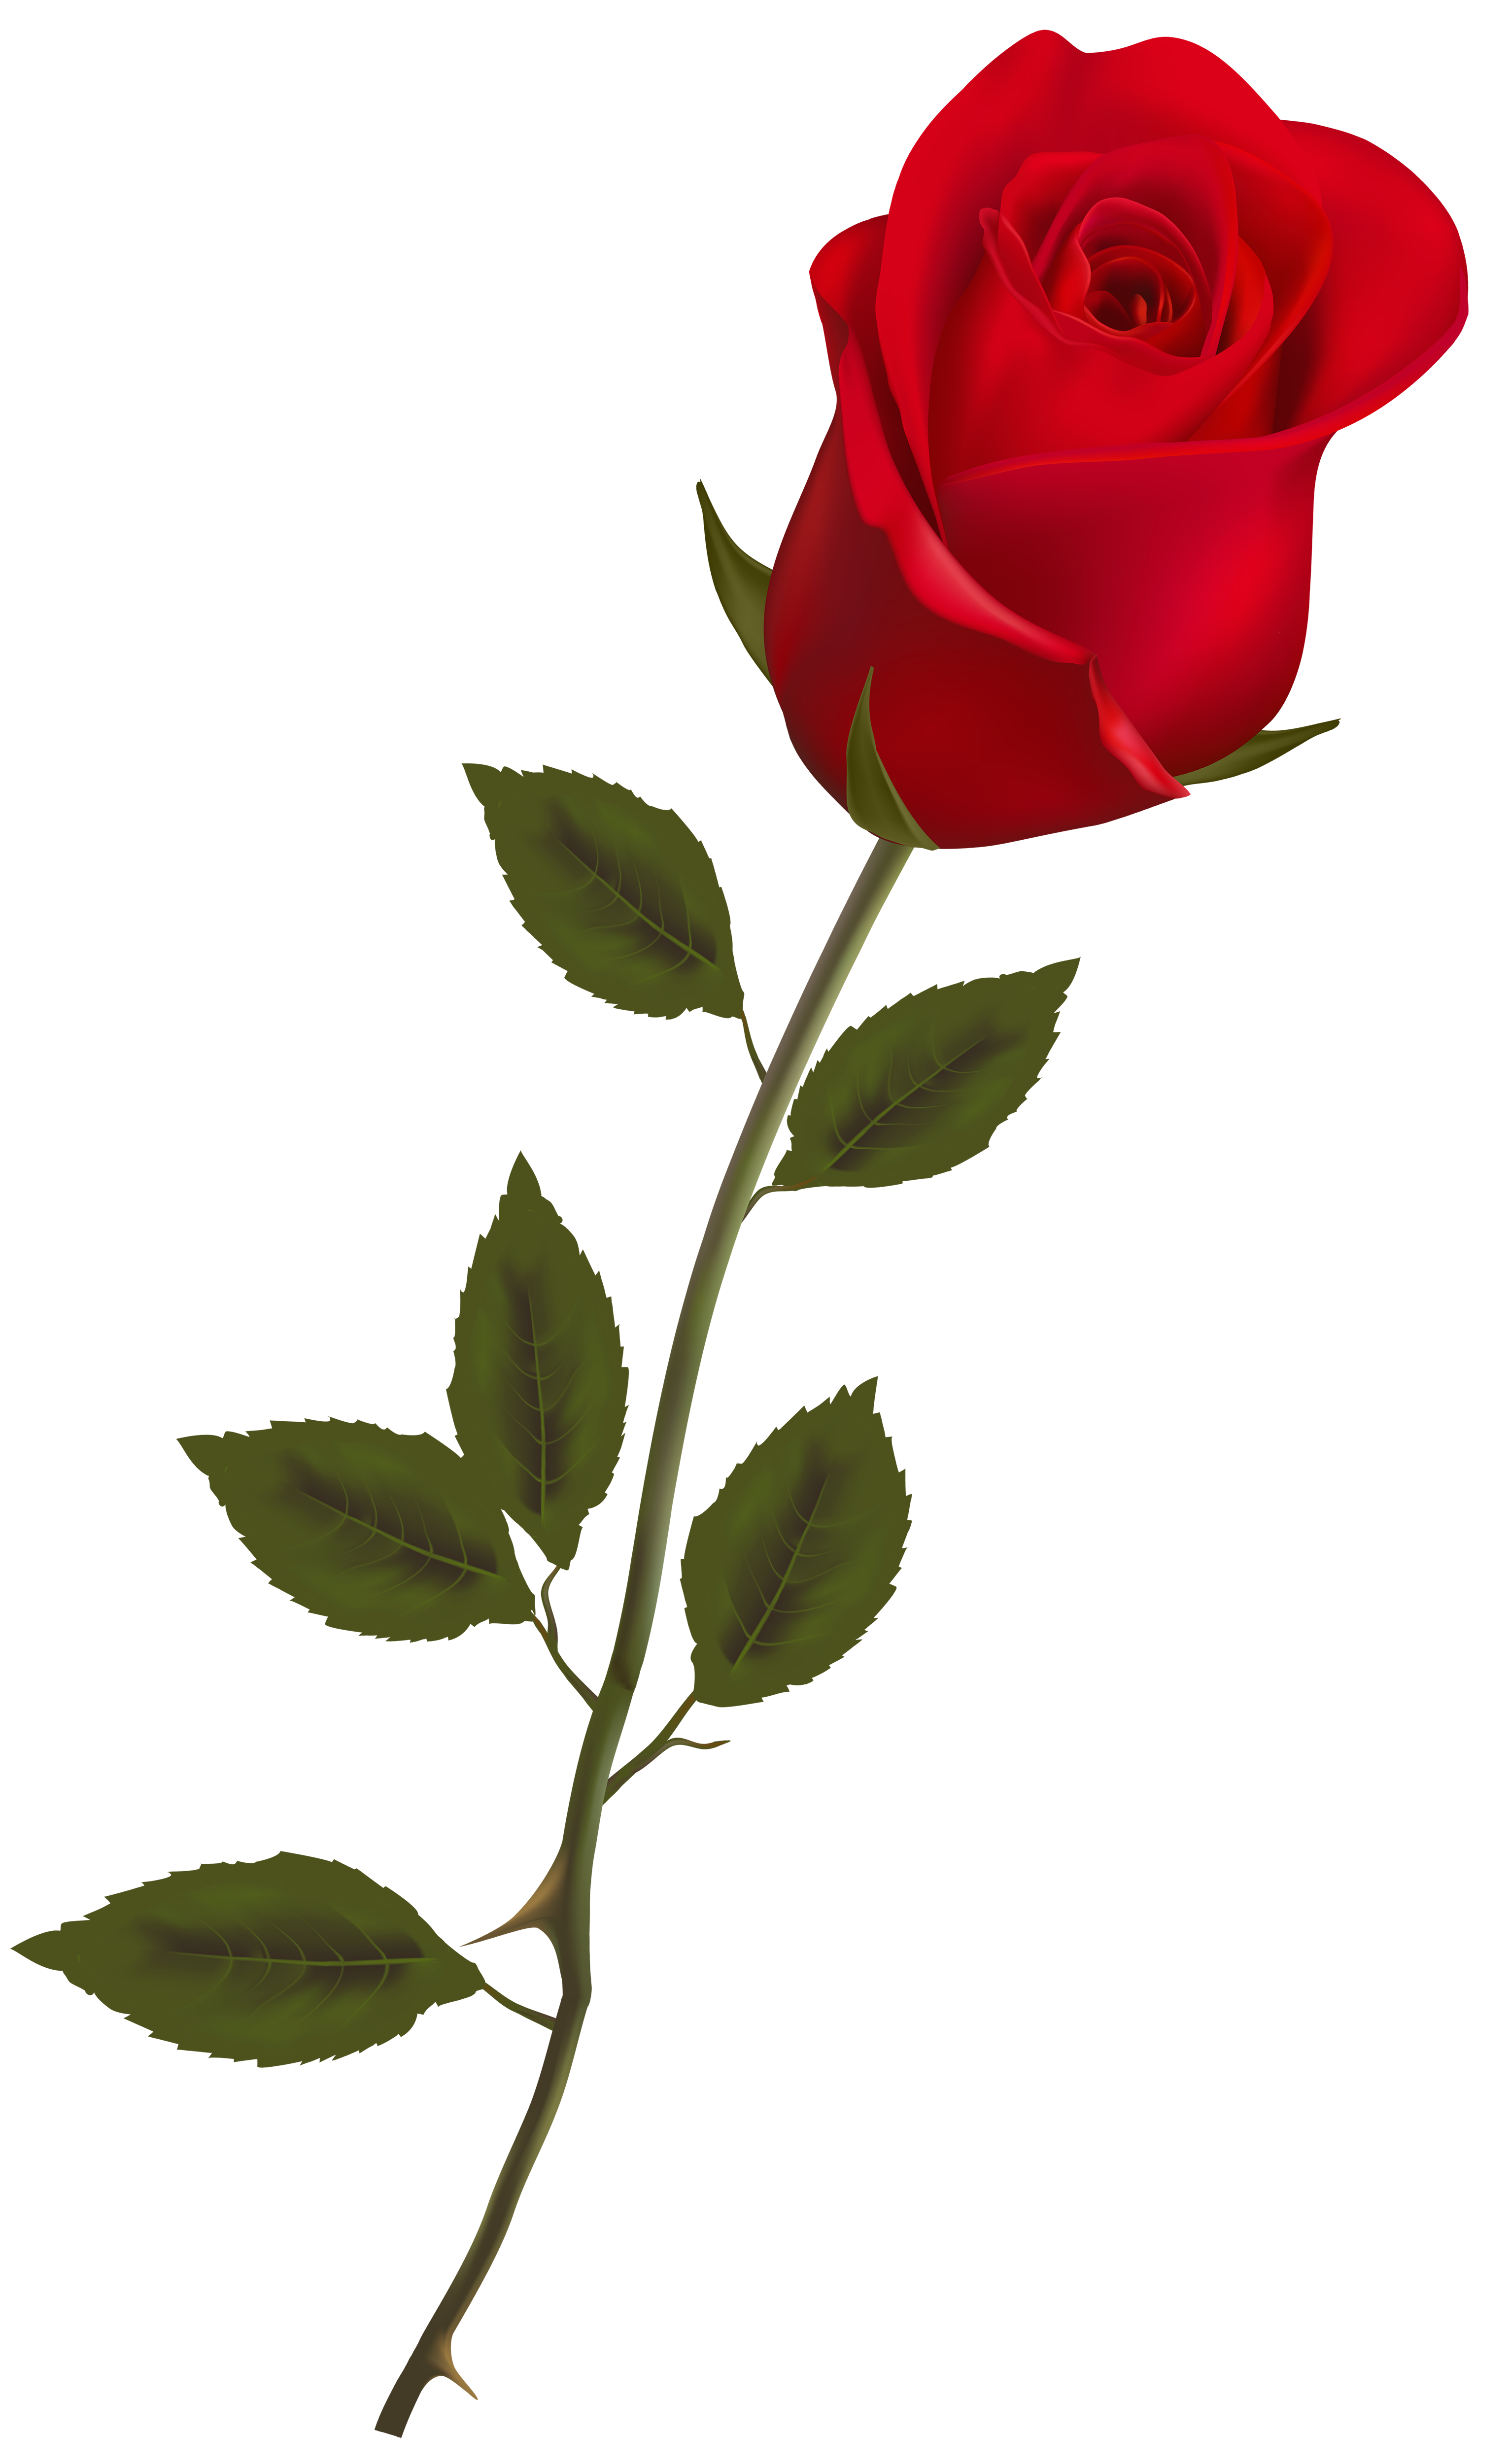 Flower stem png. Beautiful red rose clipart